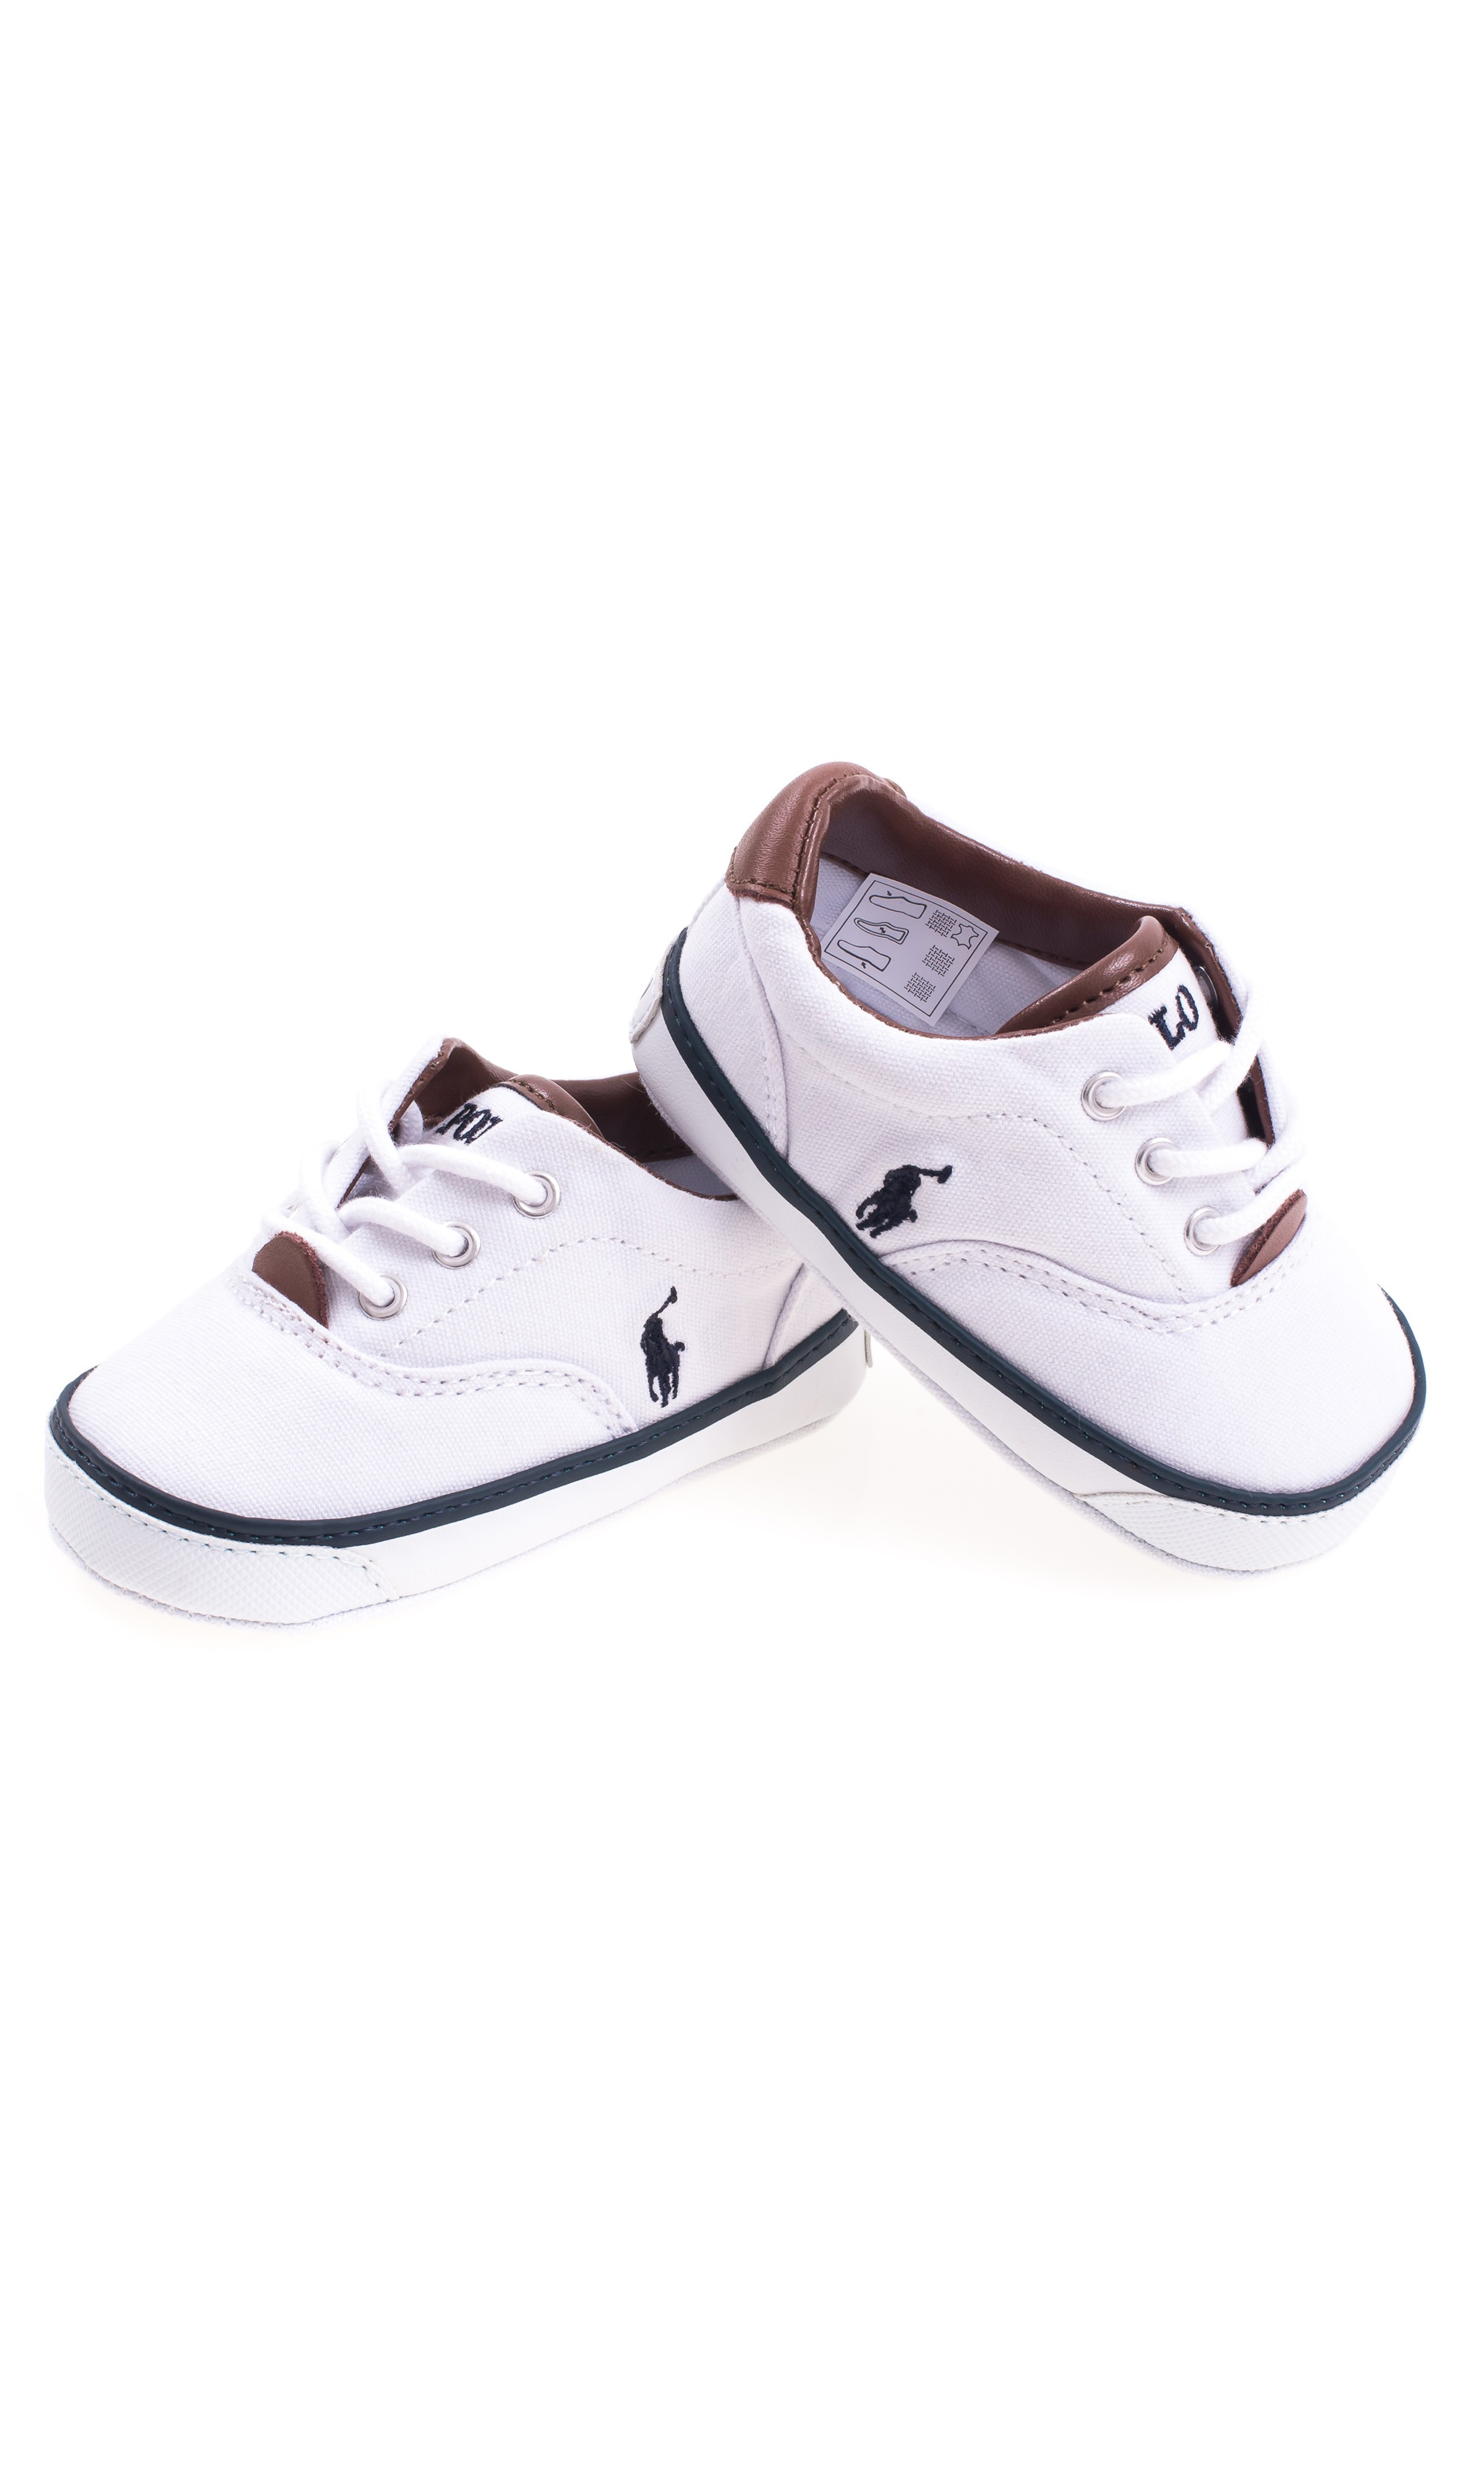 White Baby Shoes Polo Ralph Lauren Celebrity Club